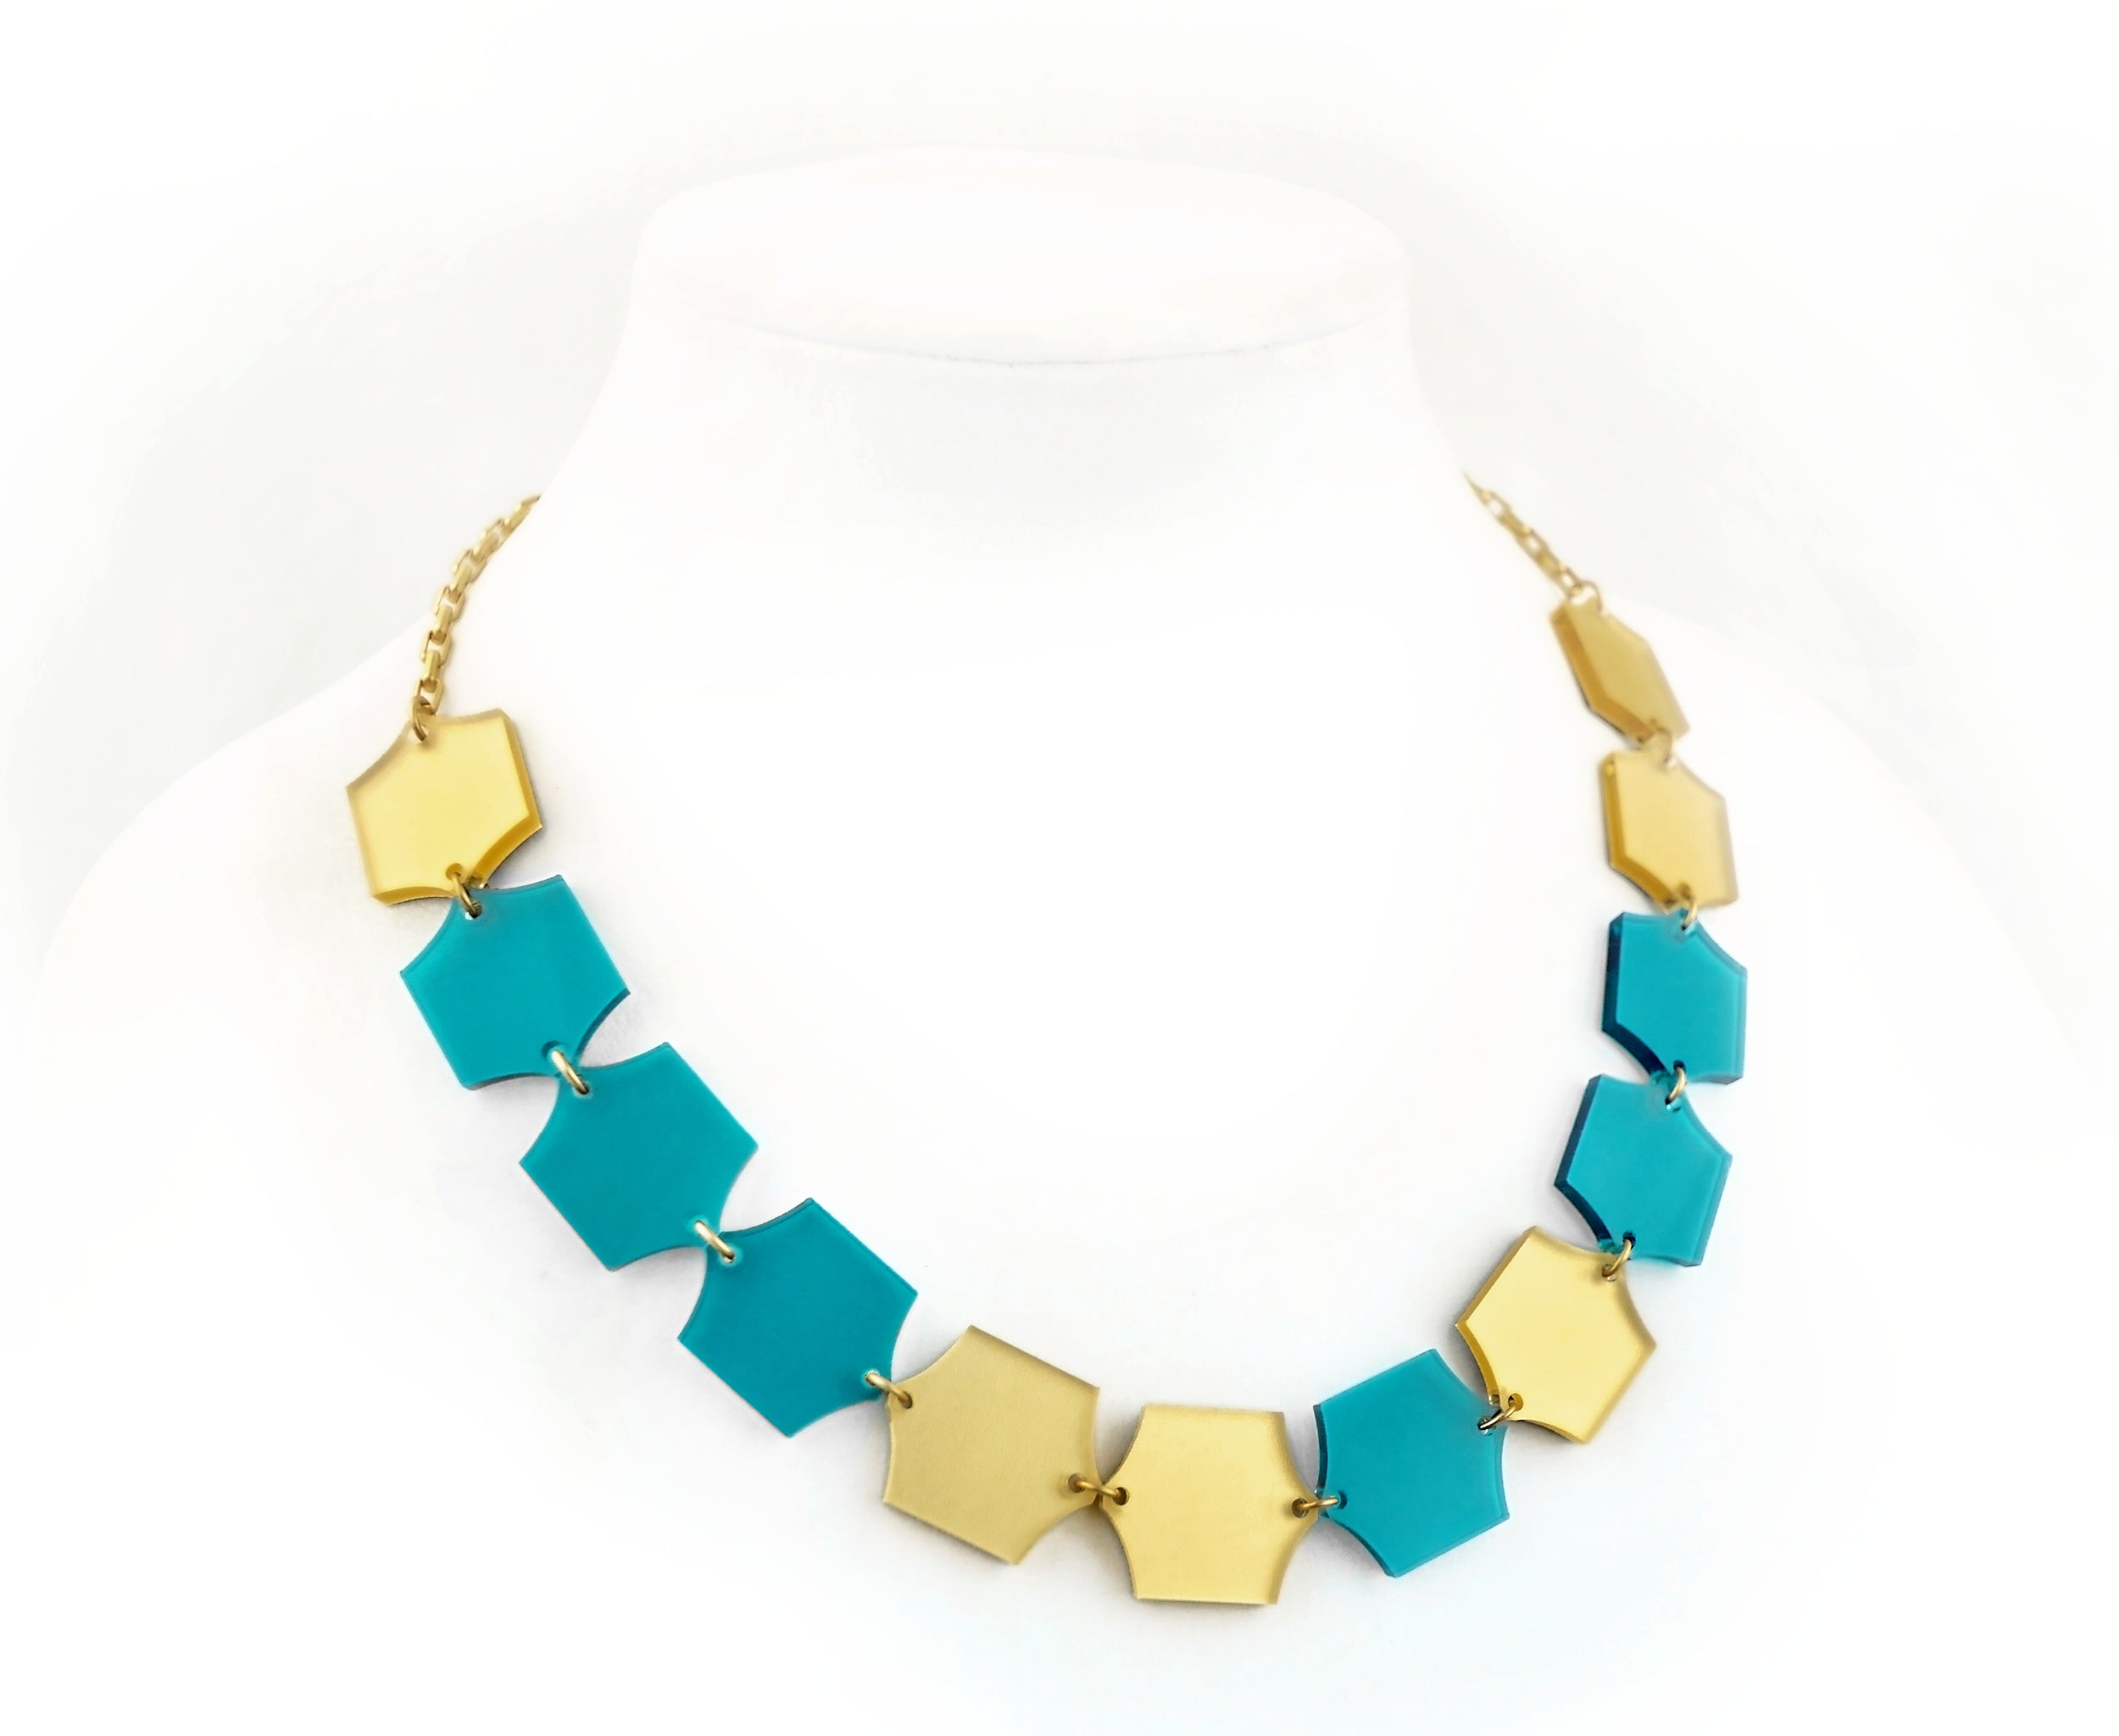 Teal & Gold Hexagon Necklace